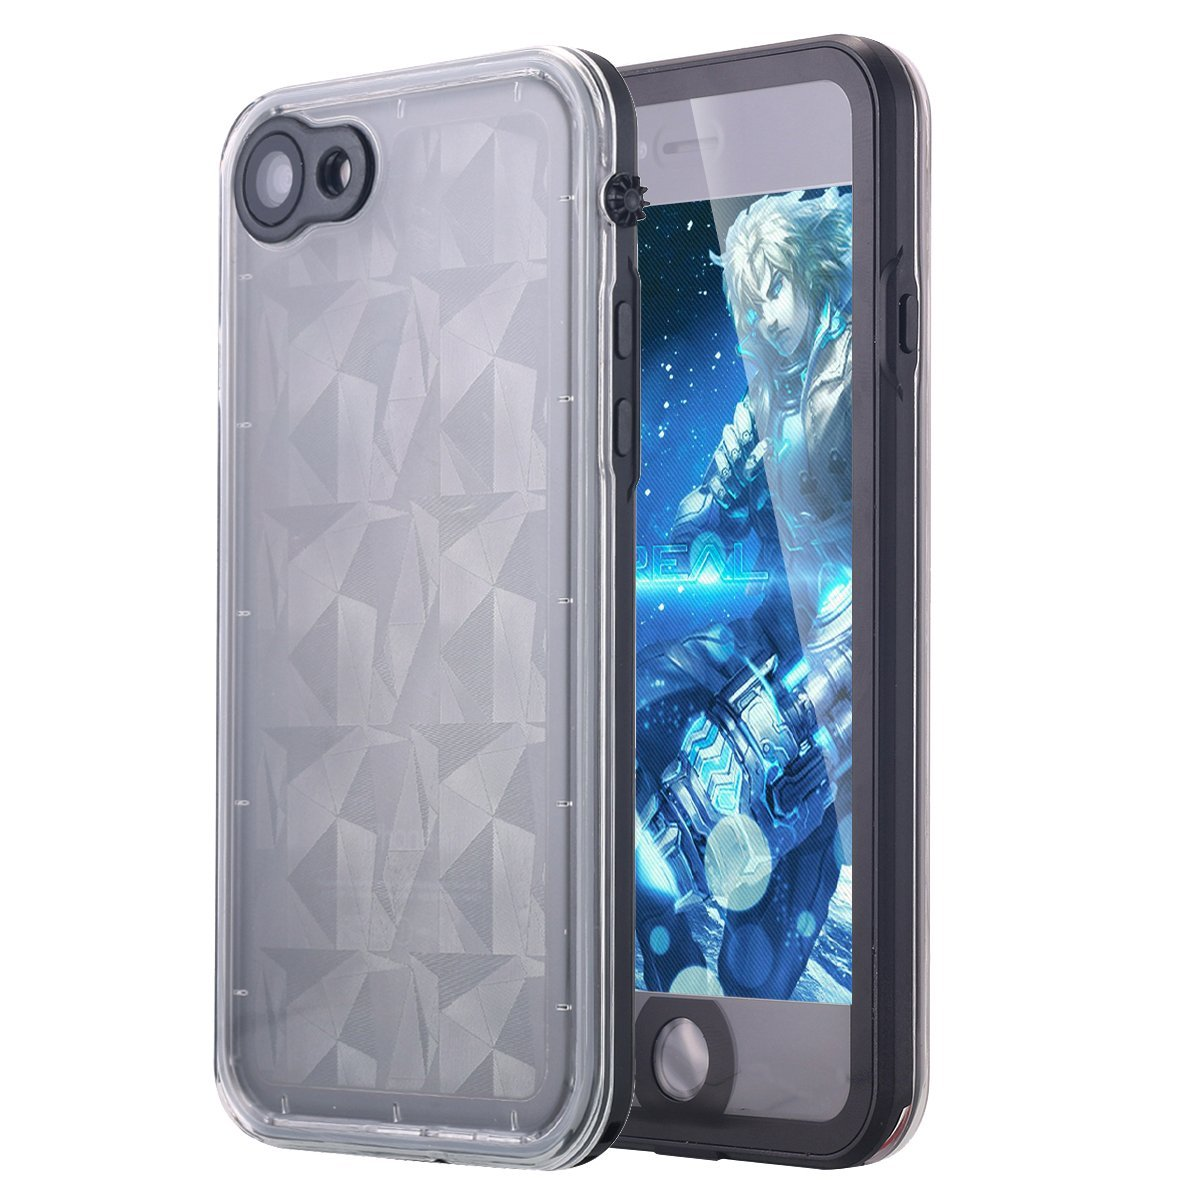 iPhone 7 Case, LONTECT Slim Thin iPhone 7 Waterproof Shockproof Dirtproof Snowproof Case with Clear Back Cover for Apple iPhone 7 - Black